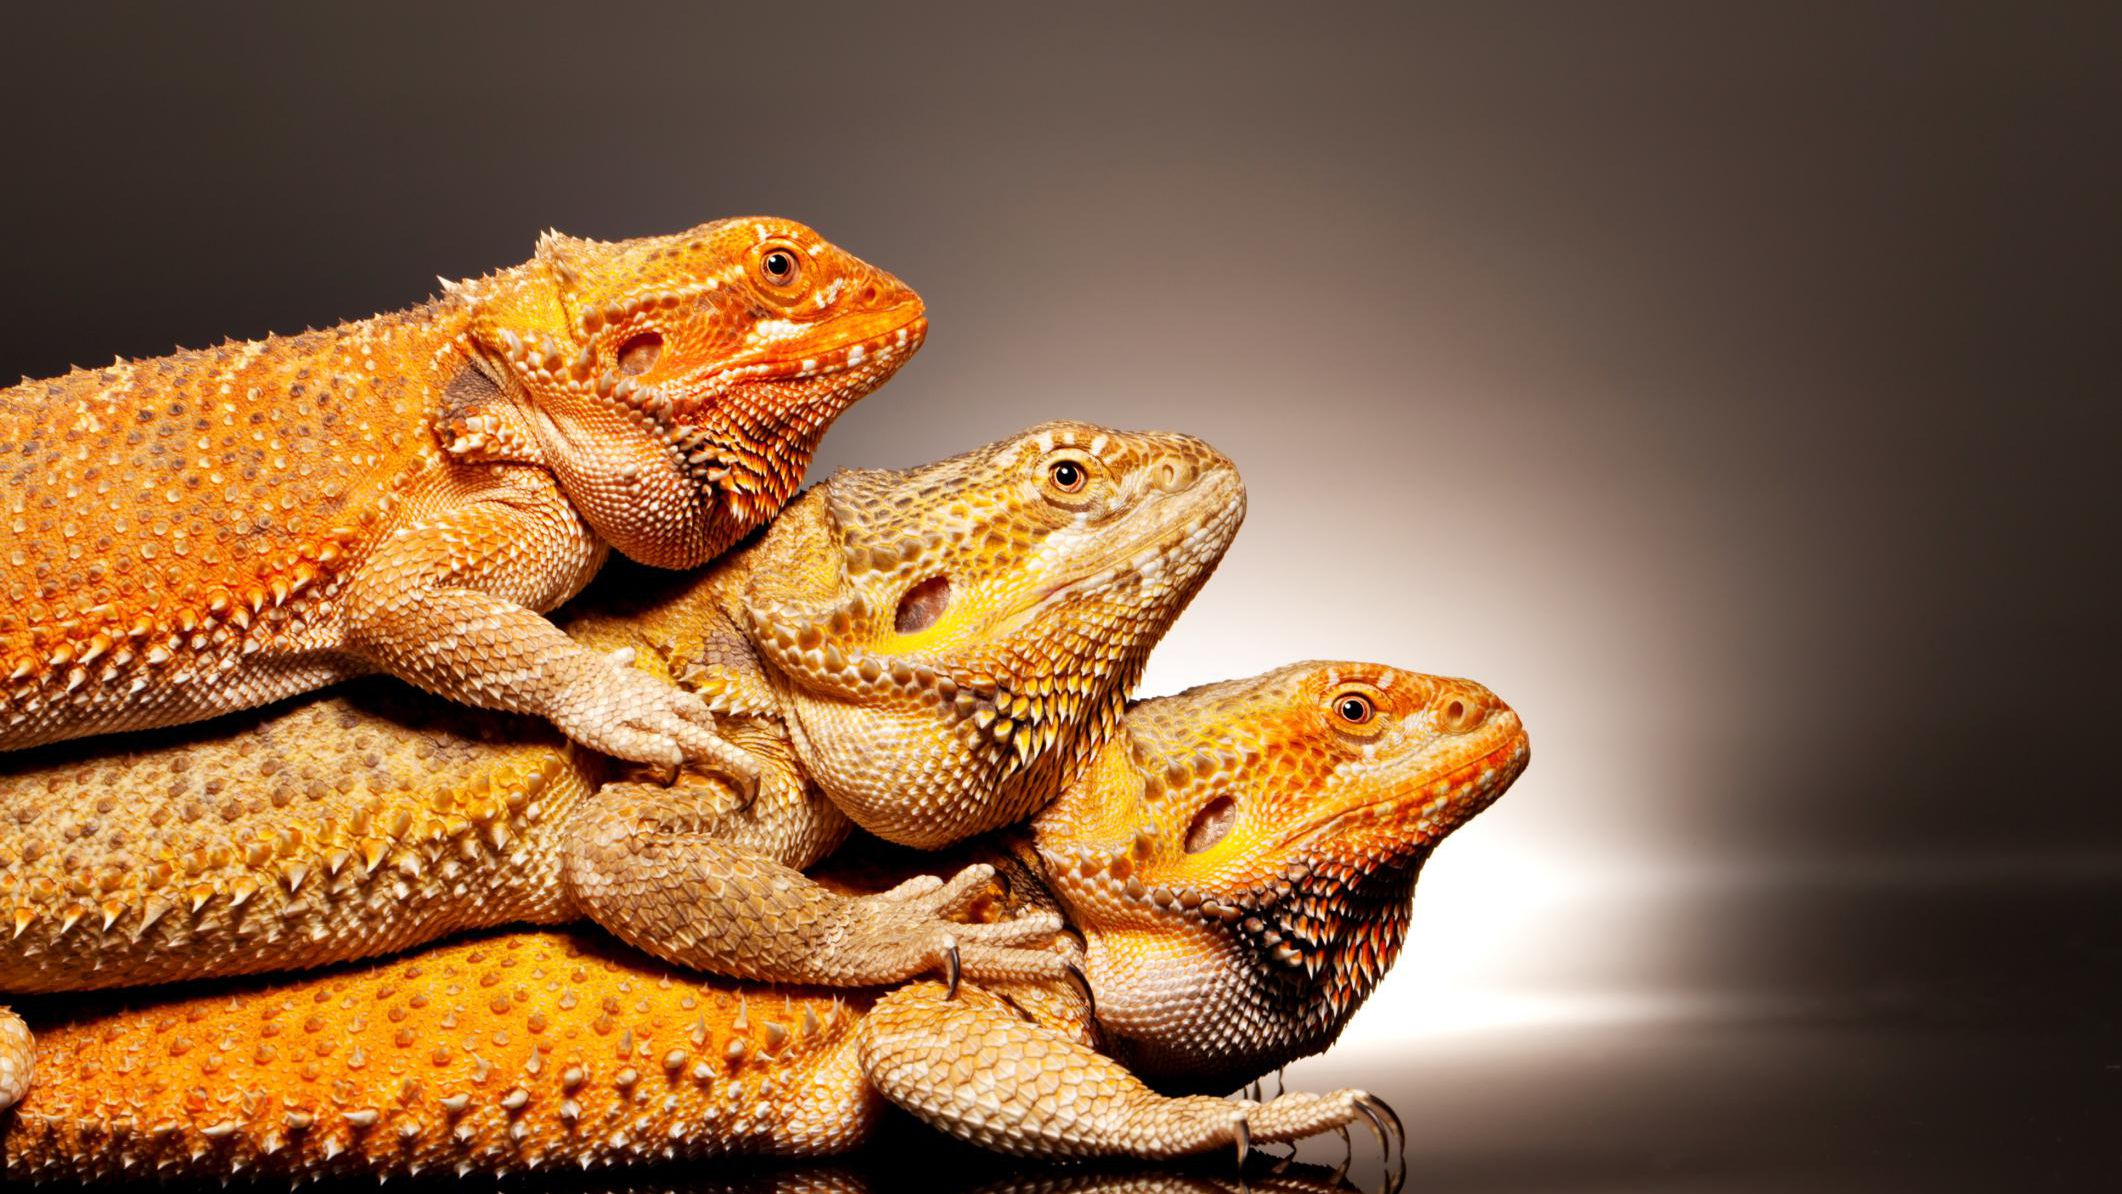 Can More Than One Bearded Dragon Live Together